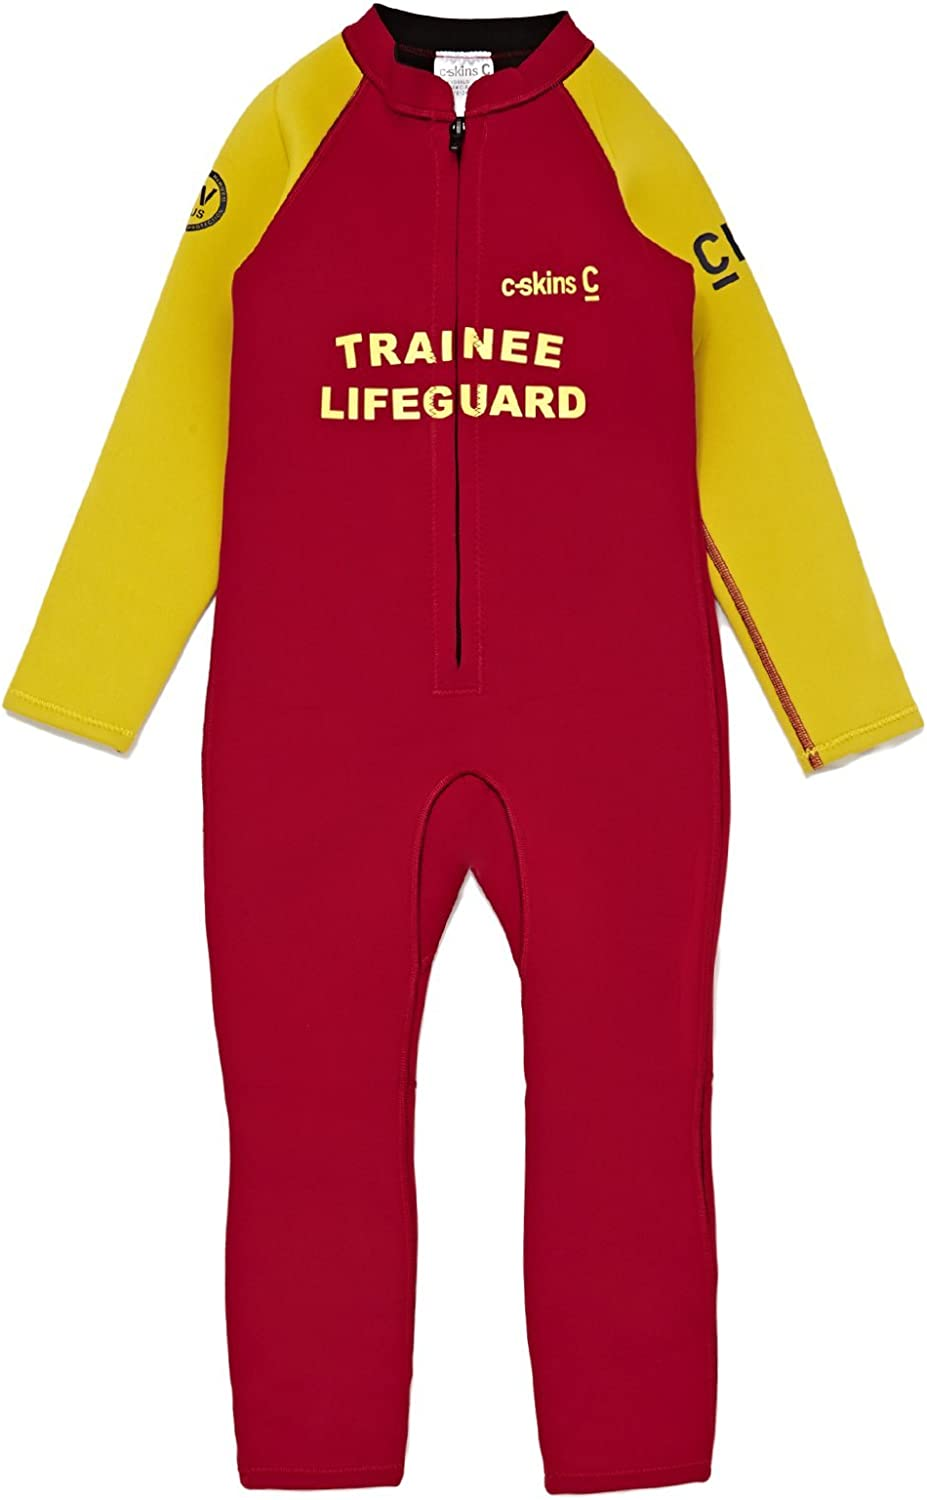 C-Skins 3-2mm Trainee Lifeguard Front Zip Wetsuit Age 2 Red Trainee